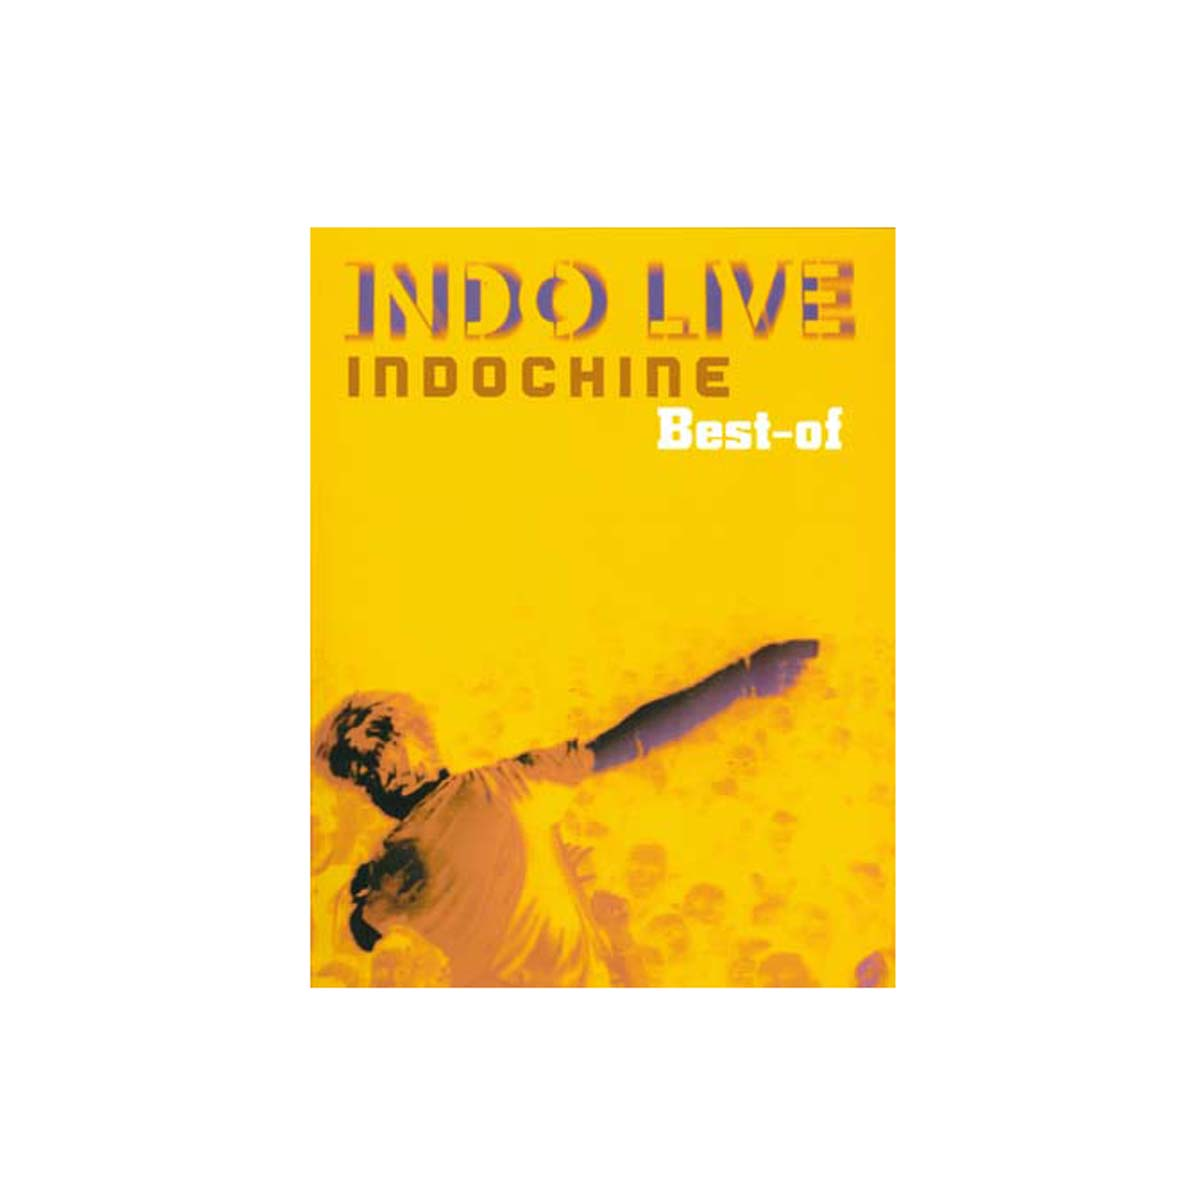 Indochine - Indolive